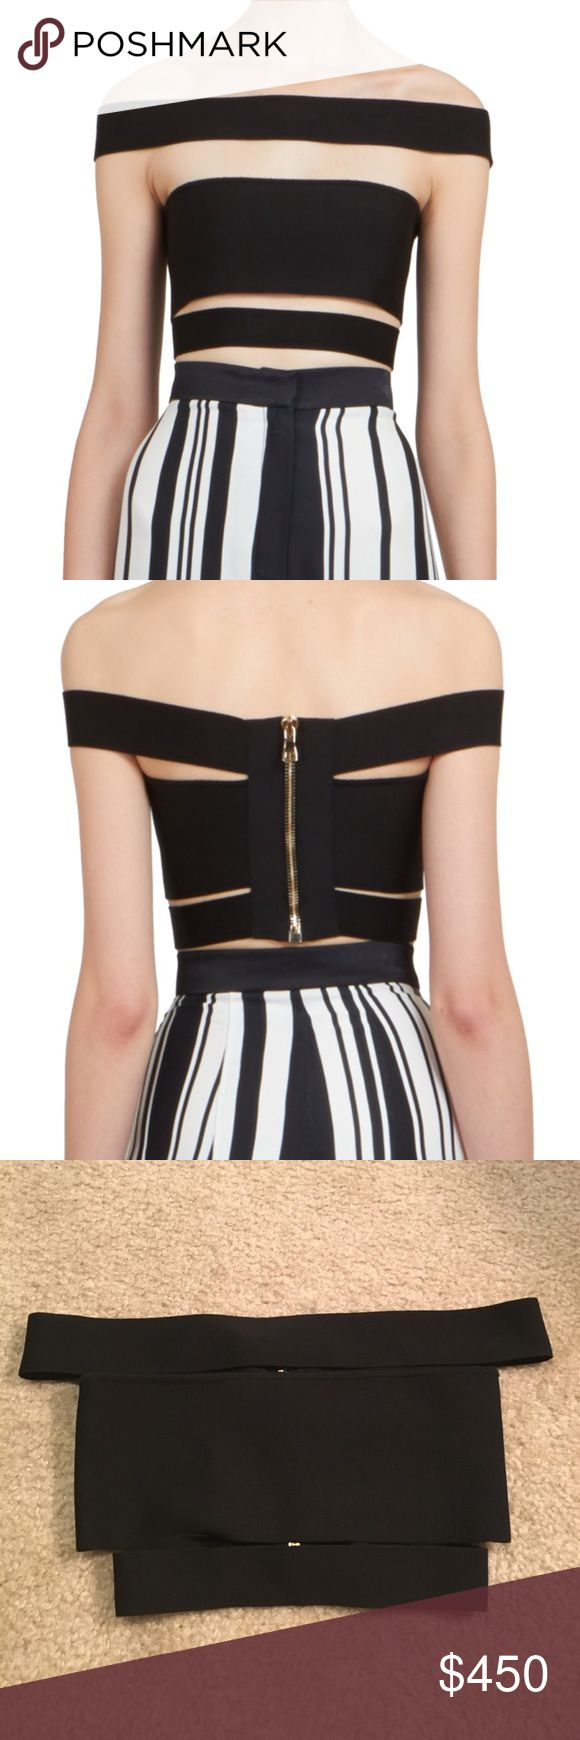 BALMAIN strappy bandage top in black! Authentic BALMAIN black bandage crop top. Size 36 fits like XS. Made in France. New with tags for $770 from Bergdorf Goodman. Willing to negotiate! Balmain Tops Crop Tops